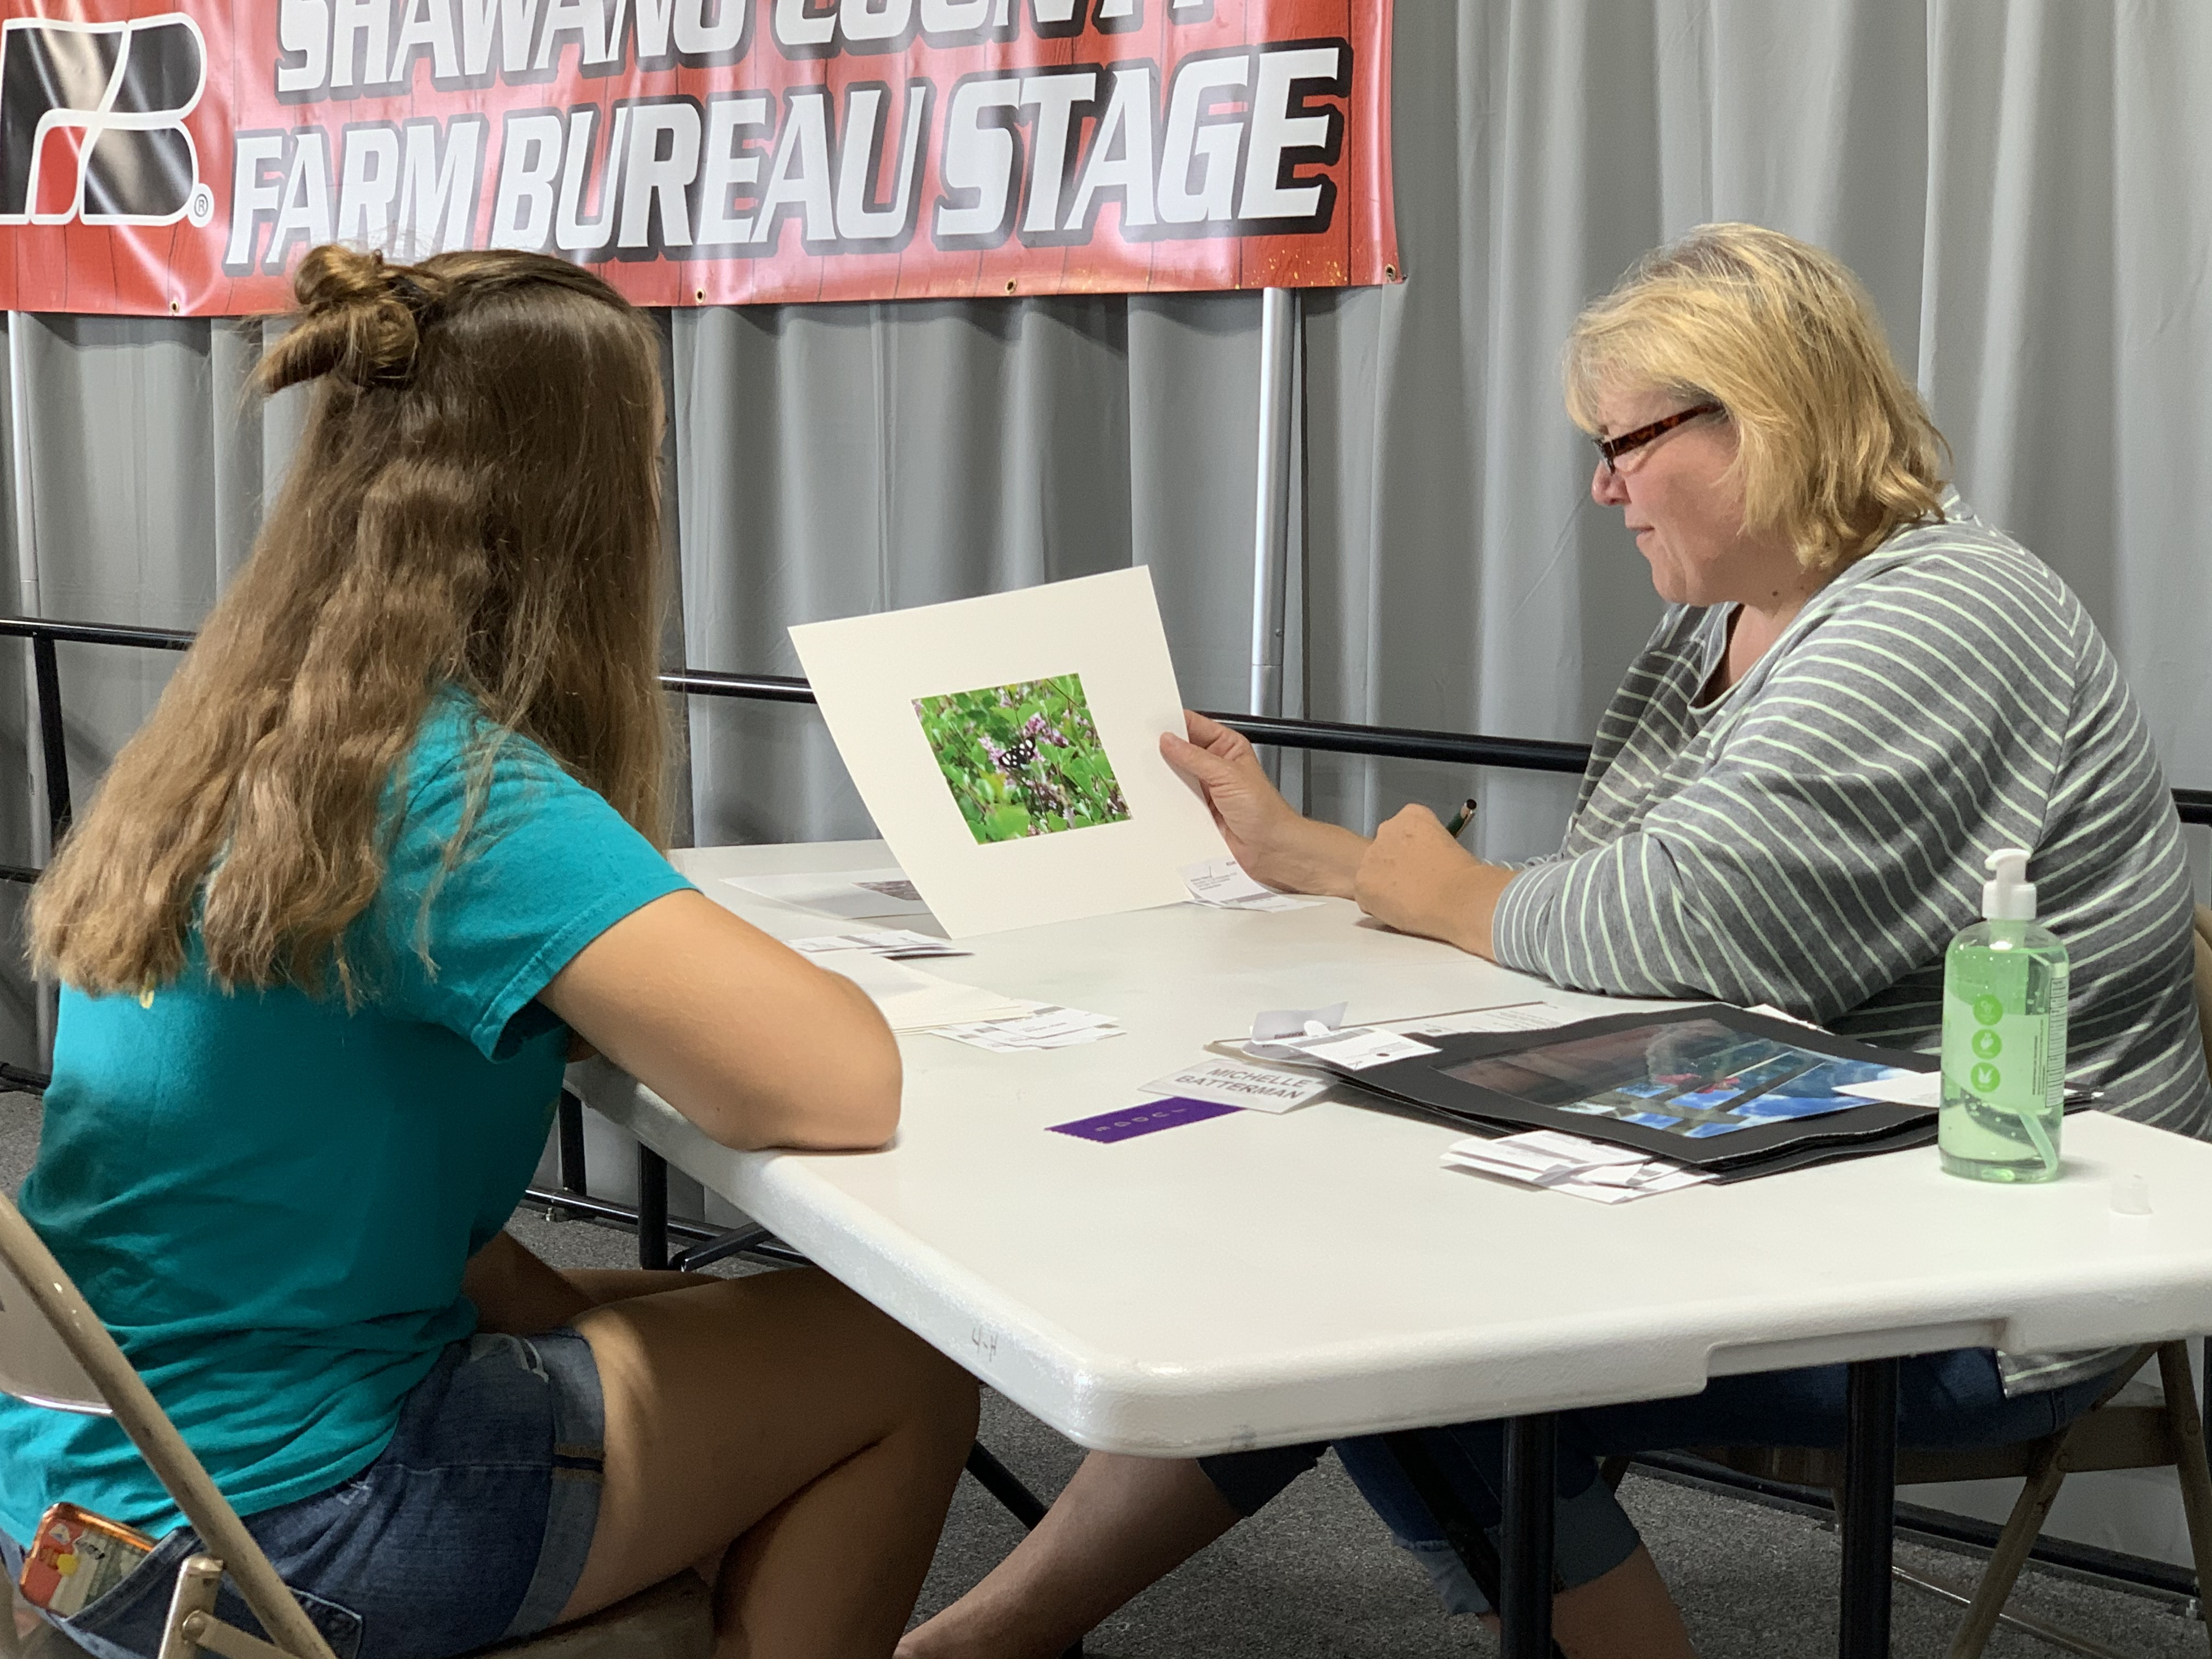 Heidi Dreyer from Landstad, left, gets judged Aug. 28 by Michelle Batterman on her photography piece of art at the 4-H barn on the Shawano Fairgrounds.(Luke Reimer   NEW Media)